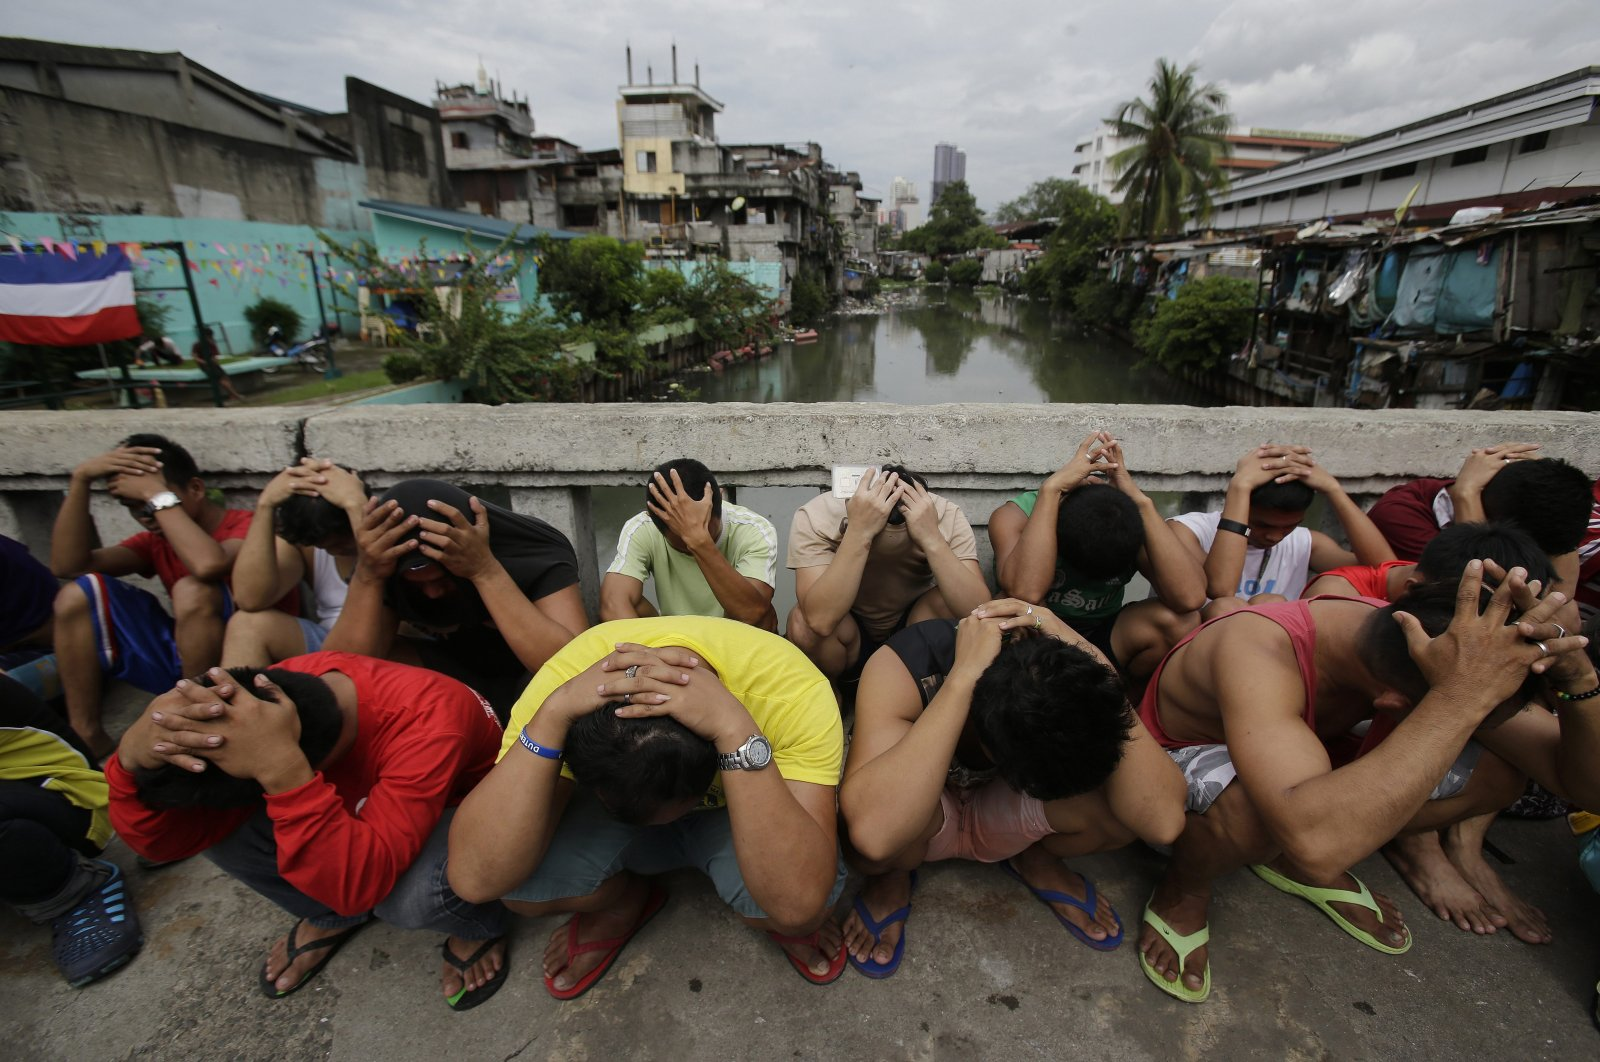 """Filipino men place their hands over their heads as they are rounded up during a police operation as part of the continuing """"War on Drugs"""" campaign of Philippine President Rodrigo Duterte in Manila, Philippines, Oct. 7, 2016. (AP Photo)"""